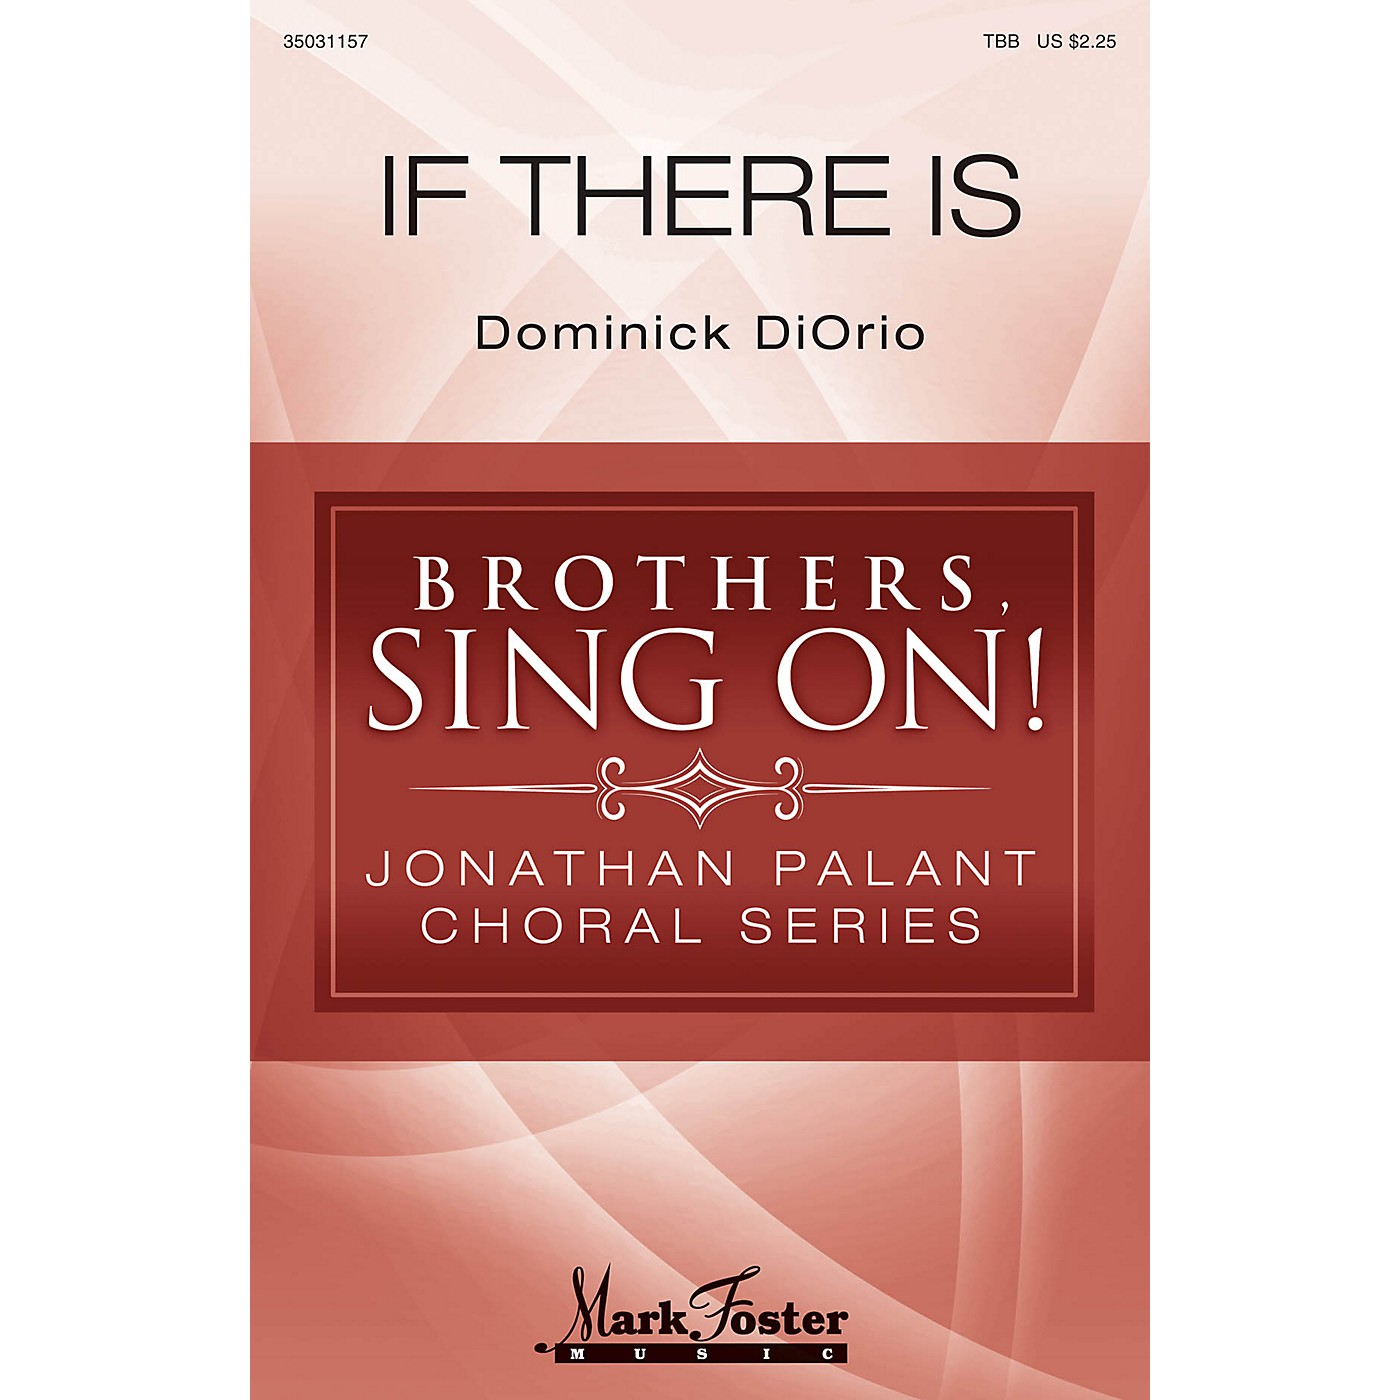 Hal Leonard If There Is (Brothers, Sing On! Jonathan Palant Choral Series) TBB composed by Dominick DiOrio thumbnail